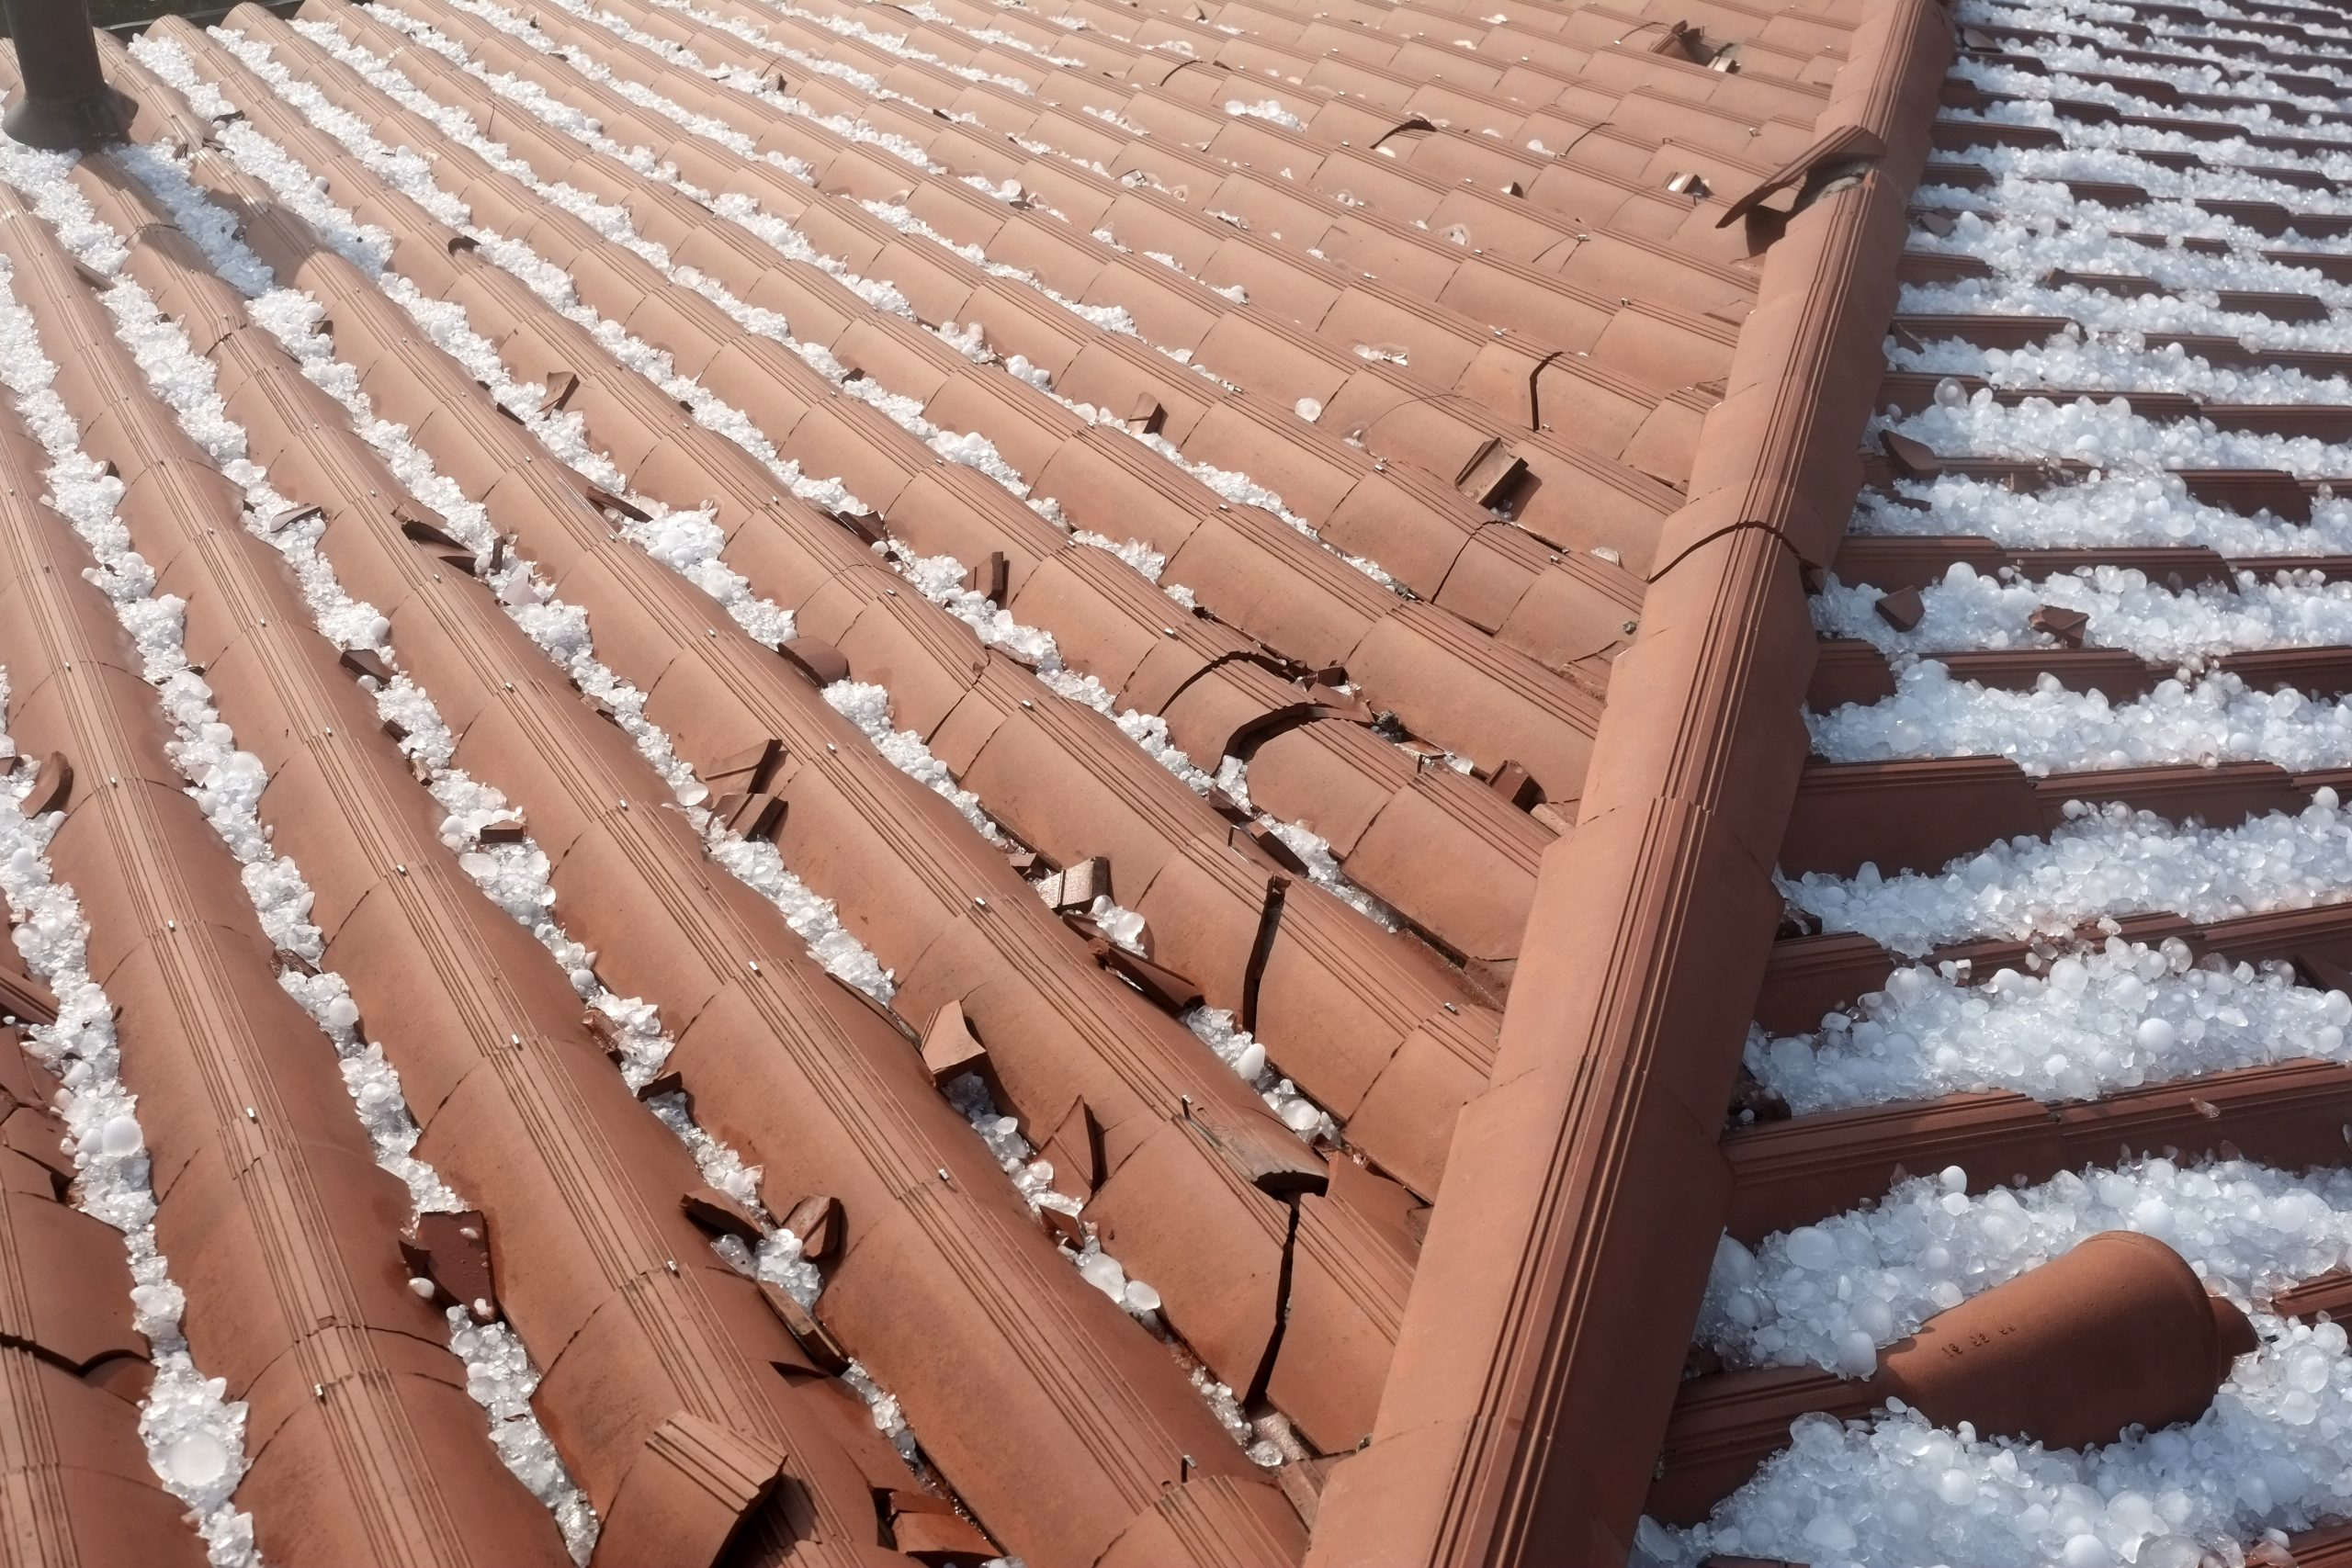 Hailstorms and your commercial roof